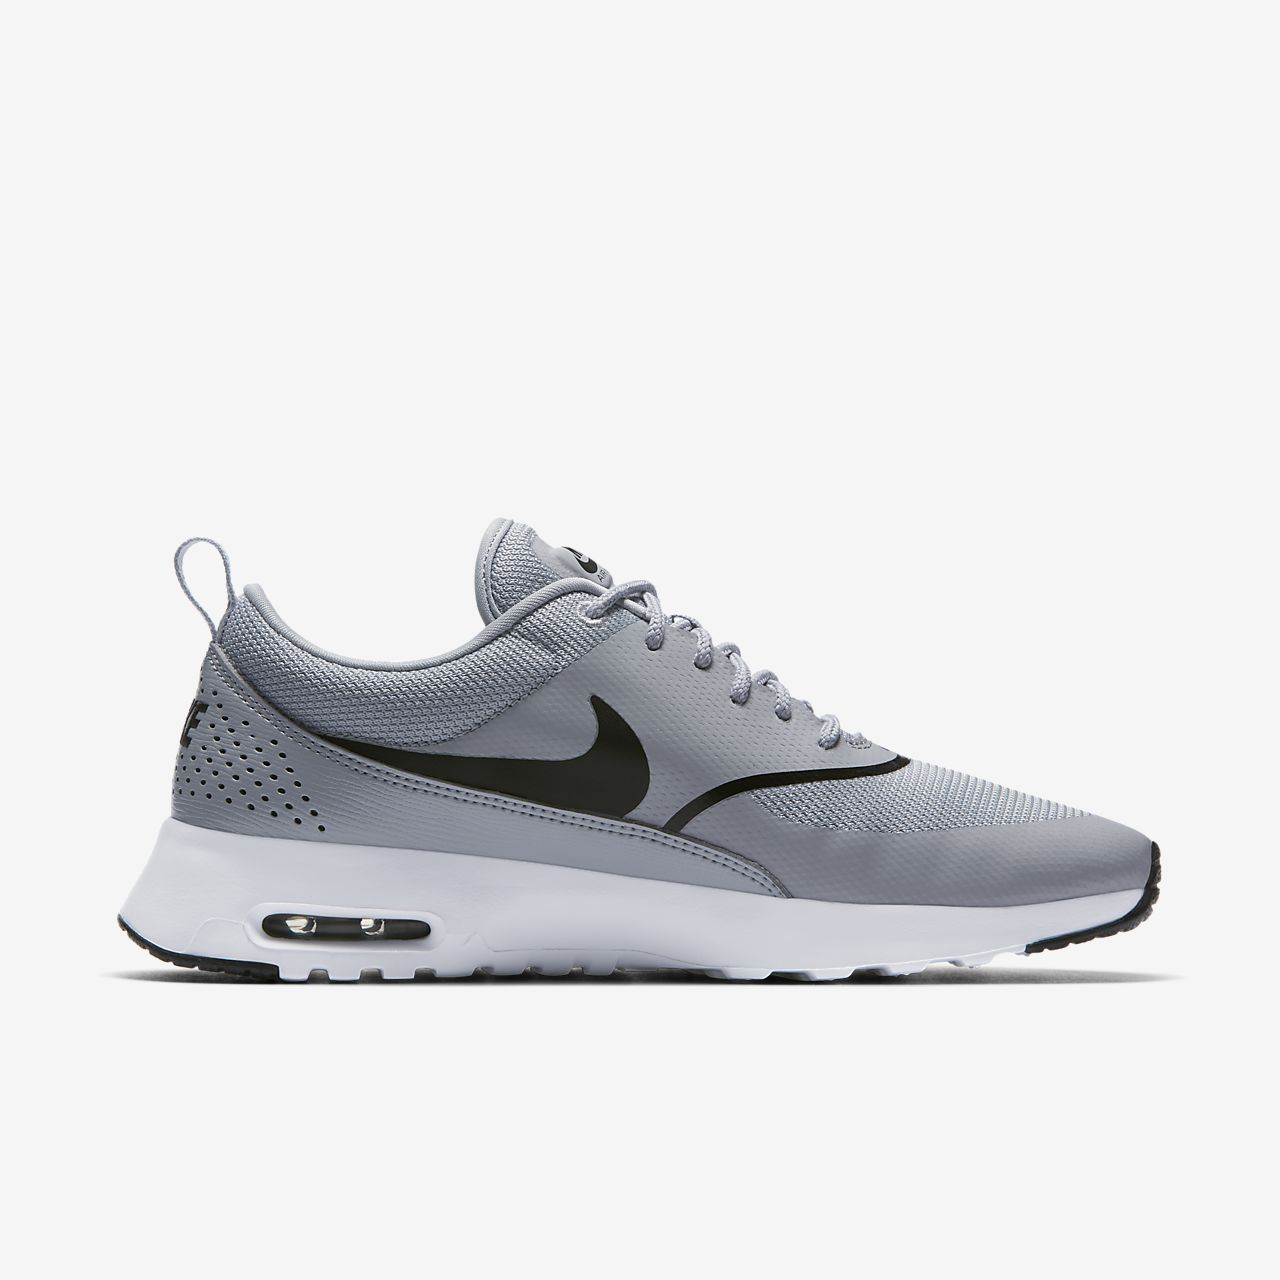 reputable site 3389d 2be75 ... Nike Air Max Thea Women s Shoe